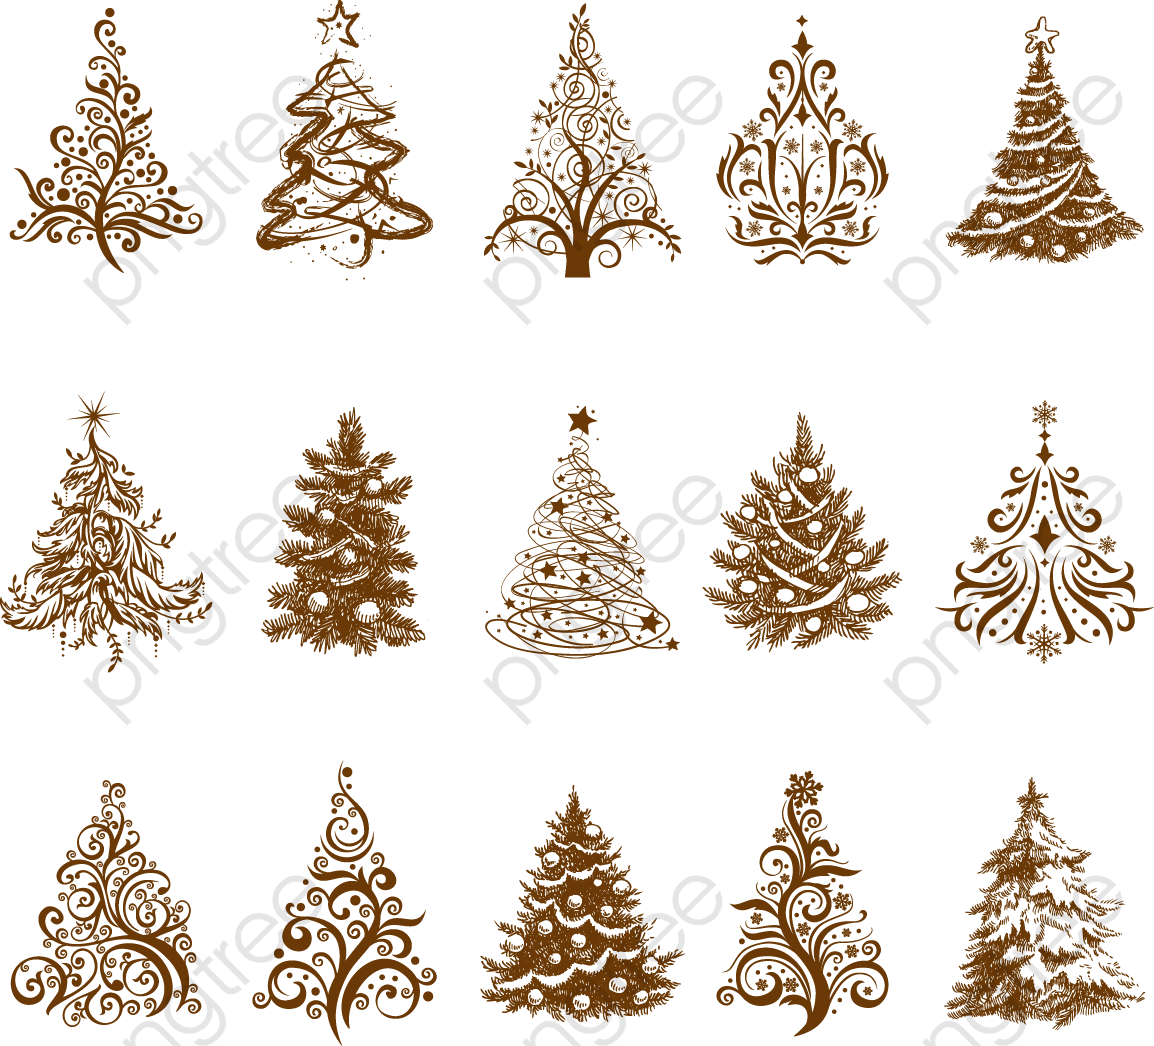 Christmas Tree Vector Image.All Kinds Of Vintage Christmas Tree Vector Material Tree